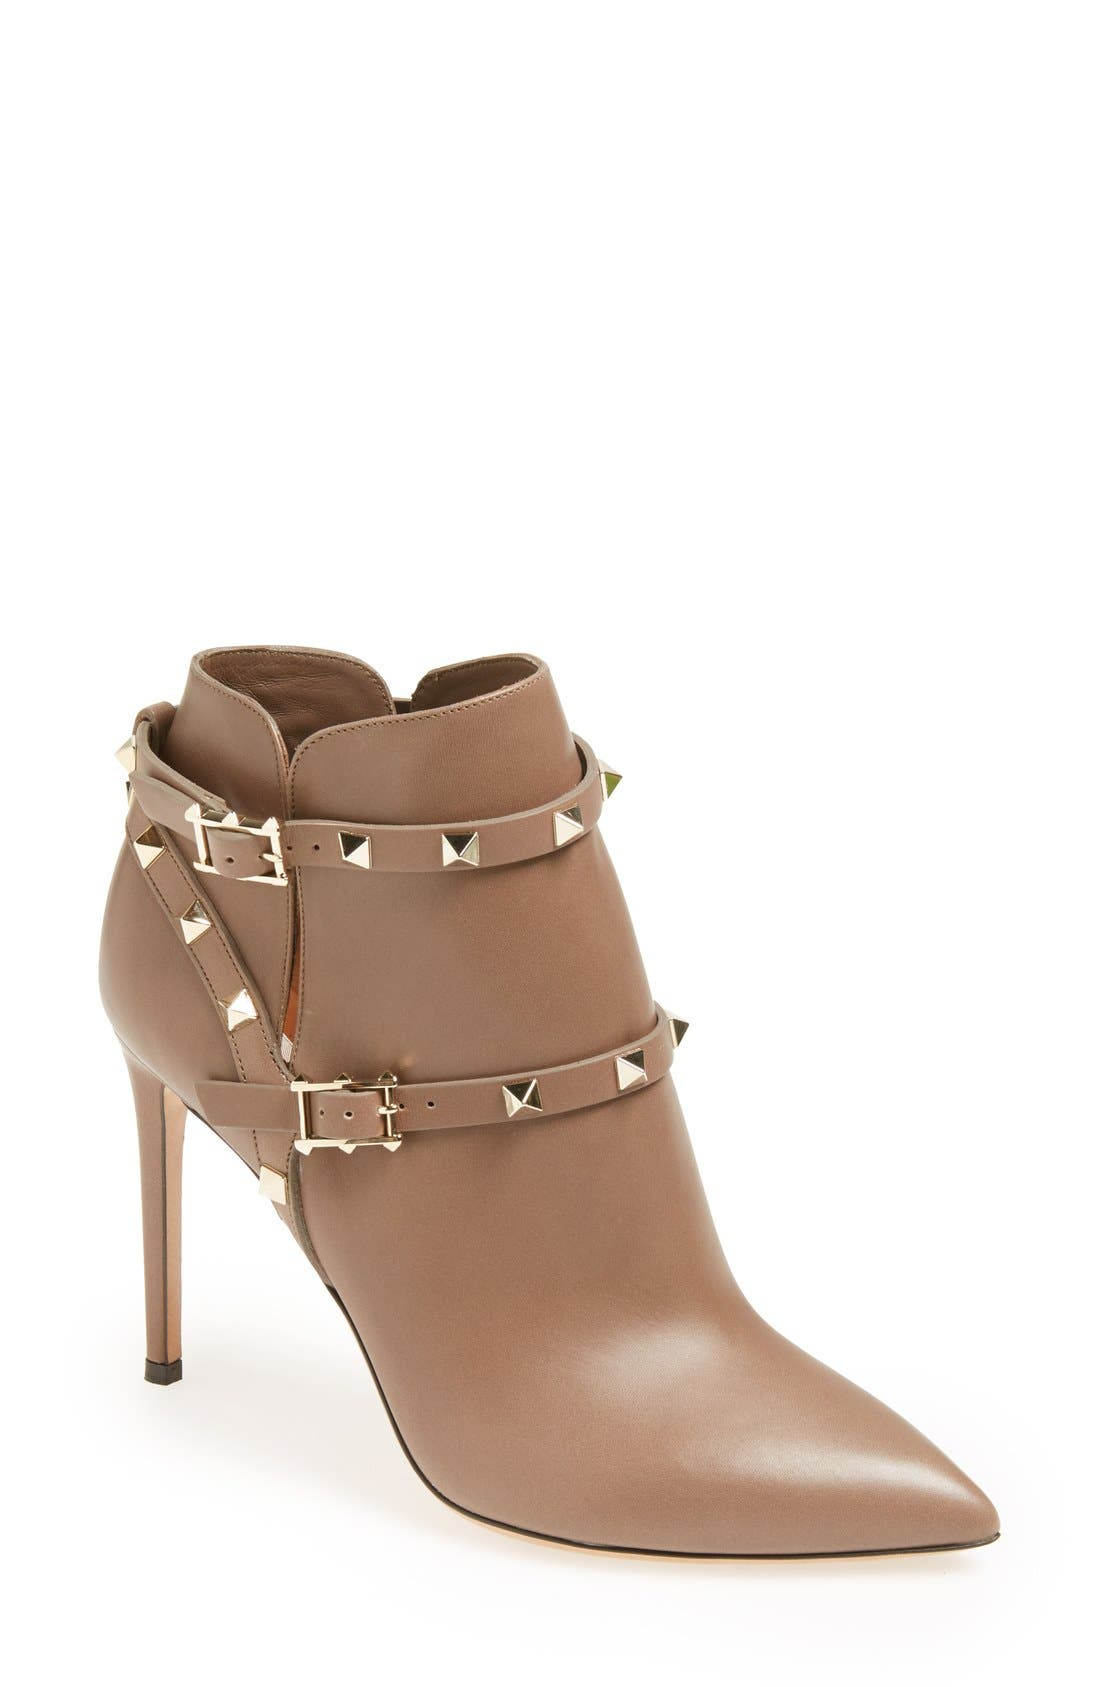 Alternate Image 1 Selected - VALENTINO GARAVANI 'Rockstud' Pointy Toe Calfskin Leather Bootie (Women)